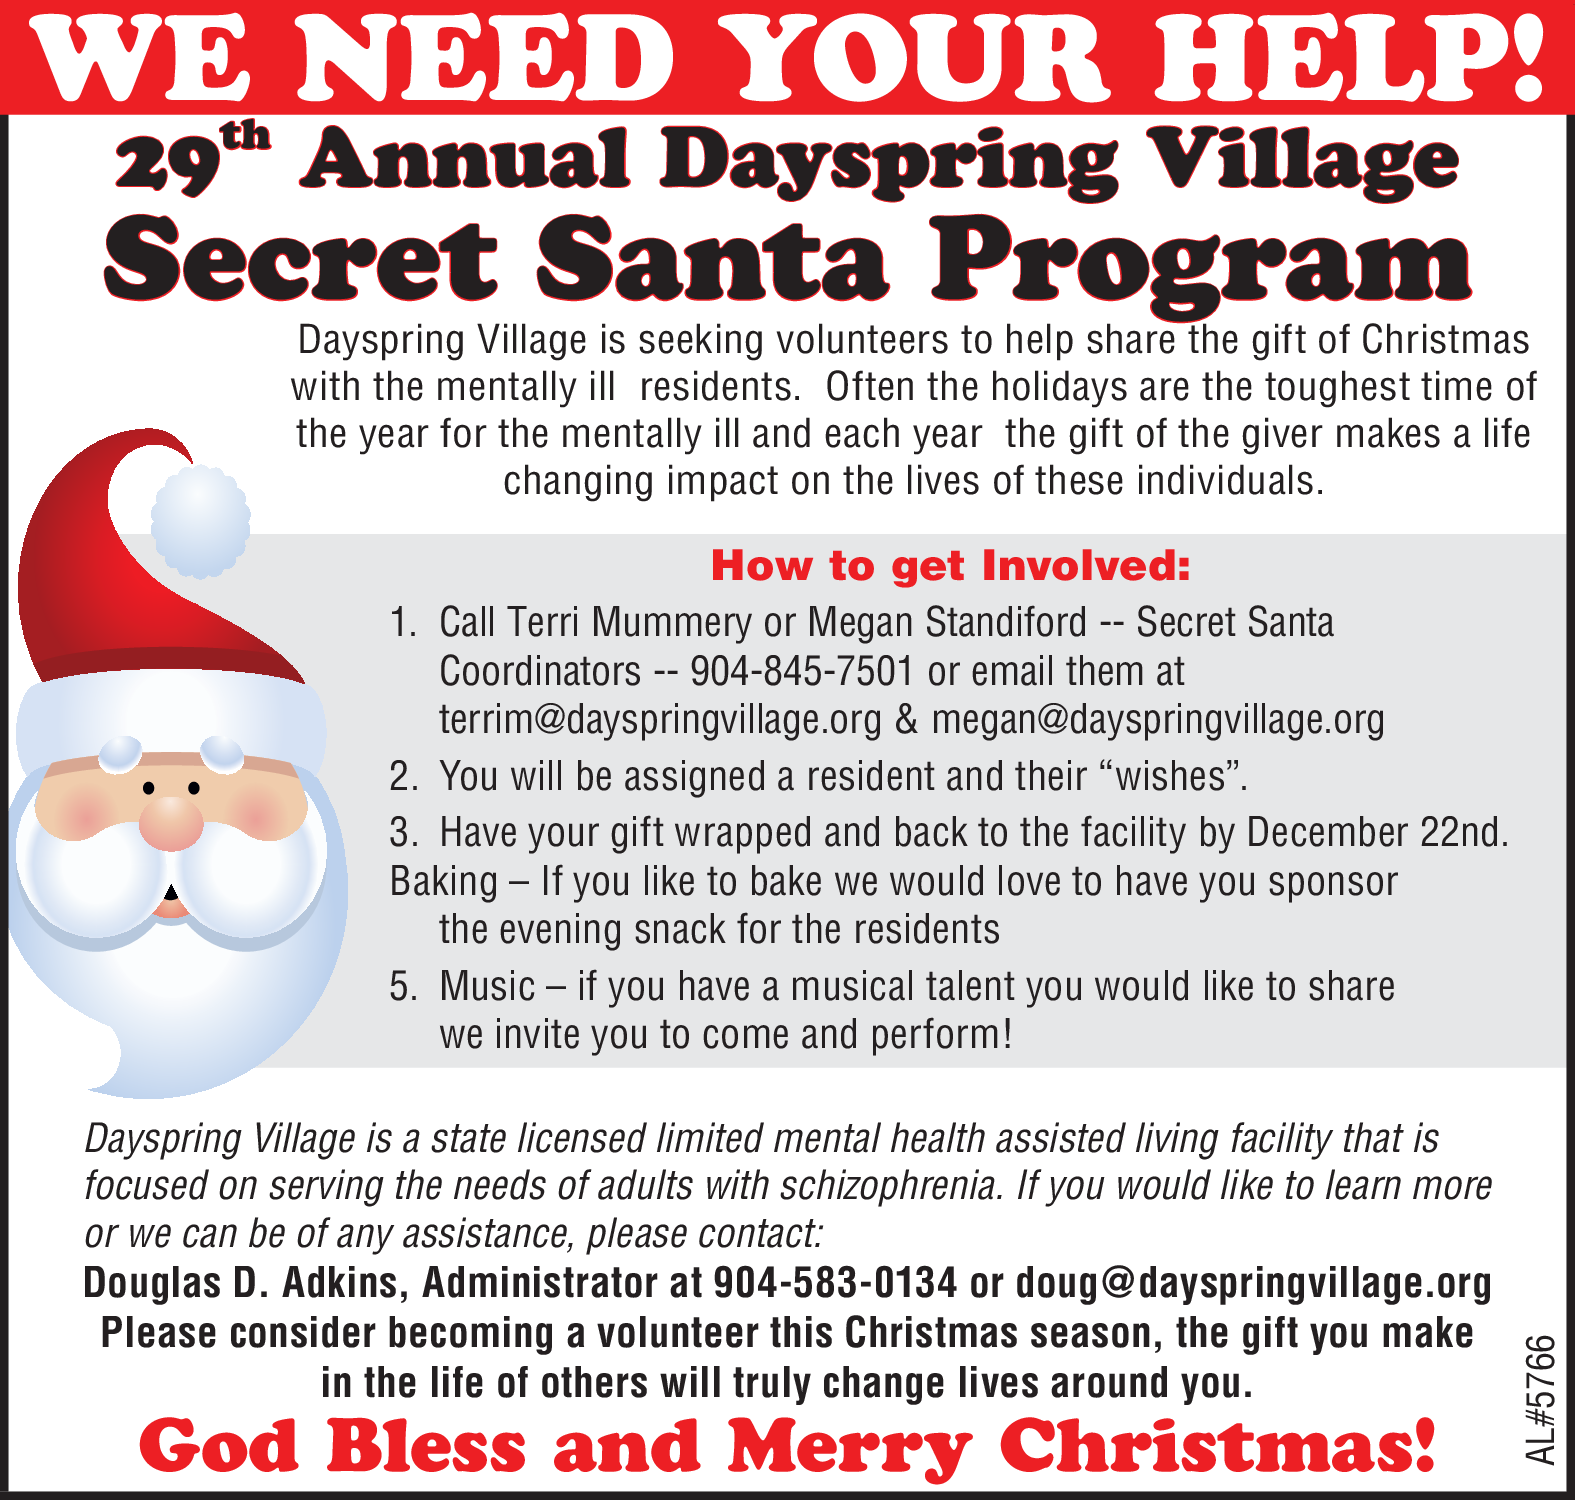 Annual Dayspring Village Secret Santa Program In Hilliard Fl